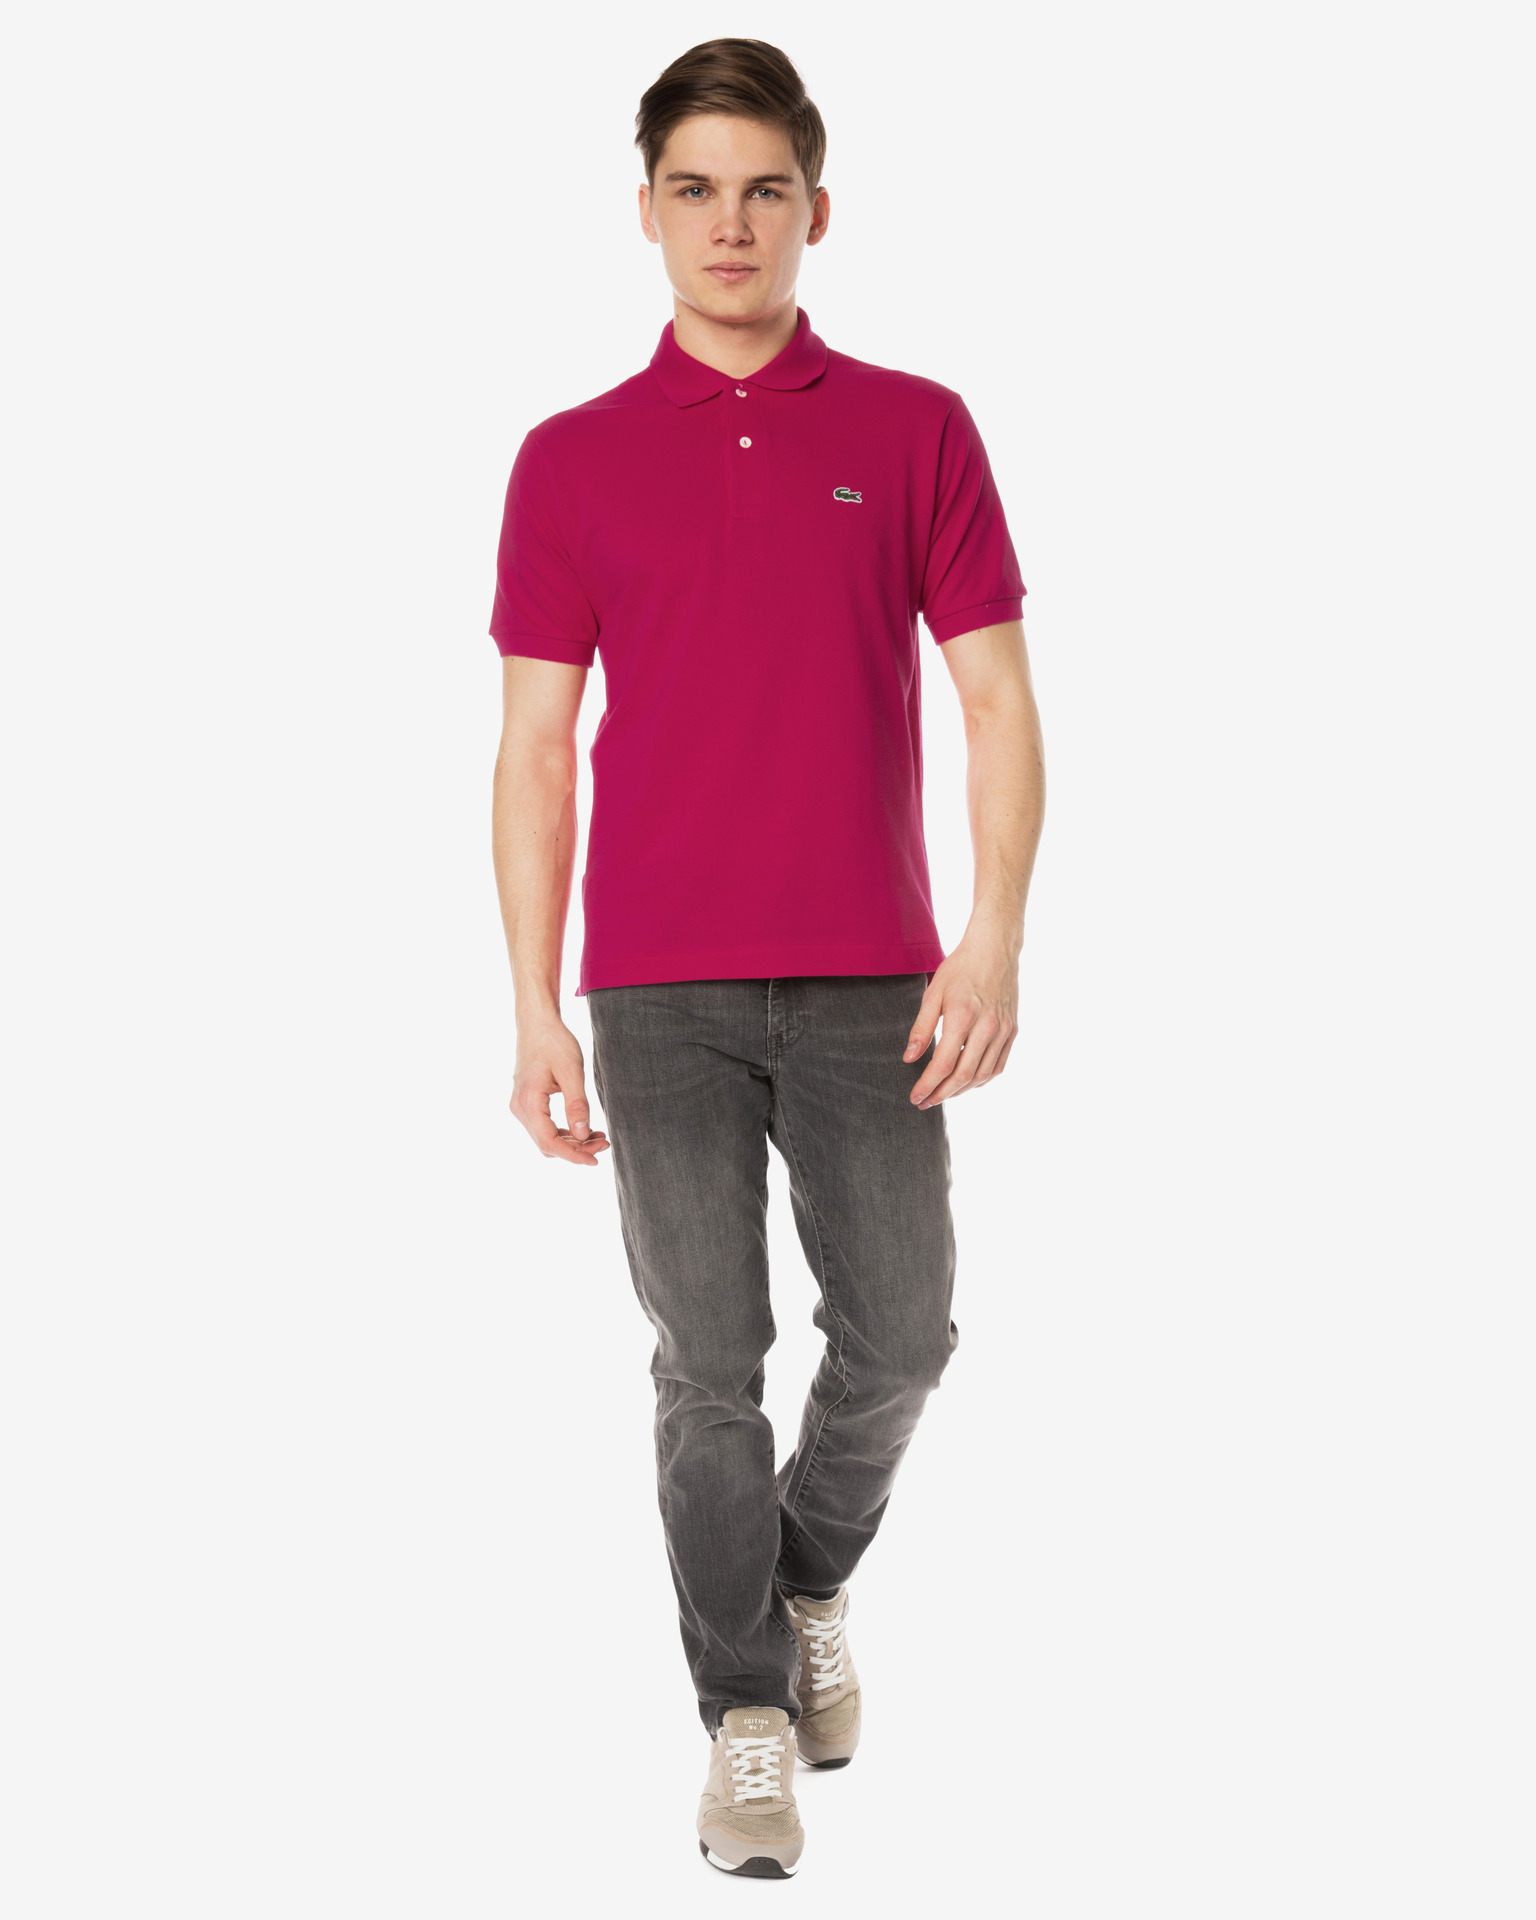 Lacoste polo shirt for Lacoste poloshirt weiay